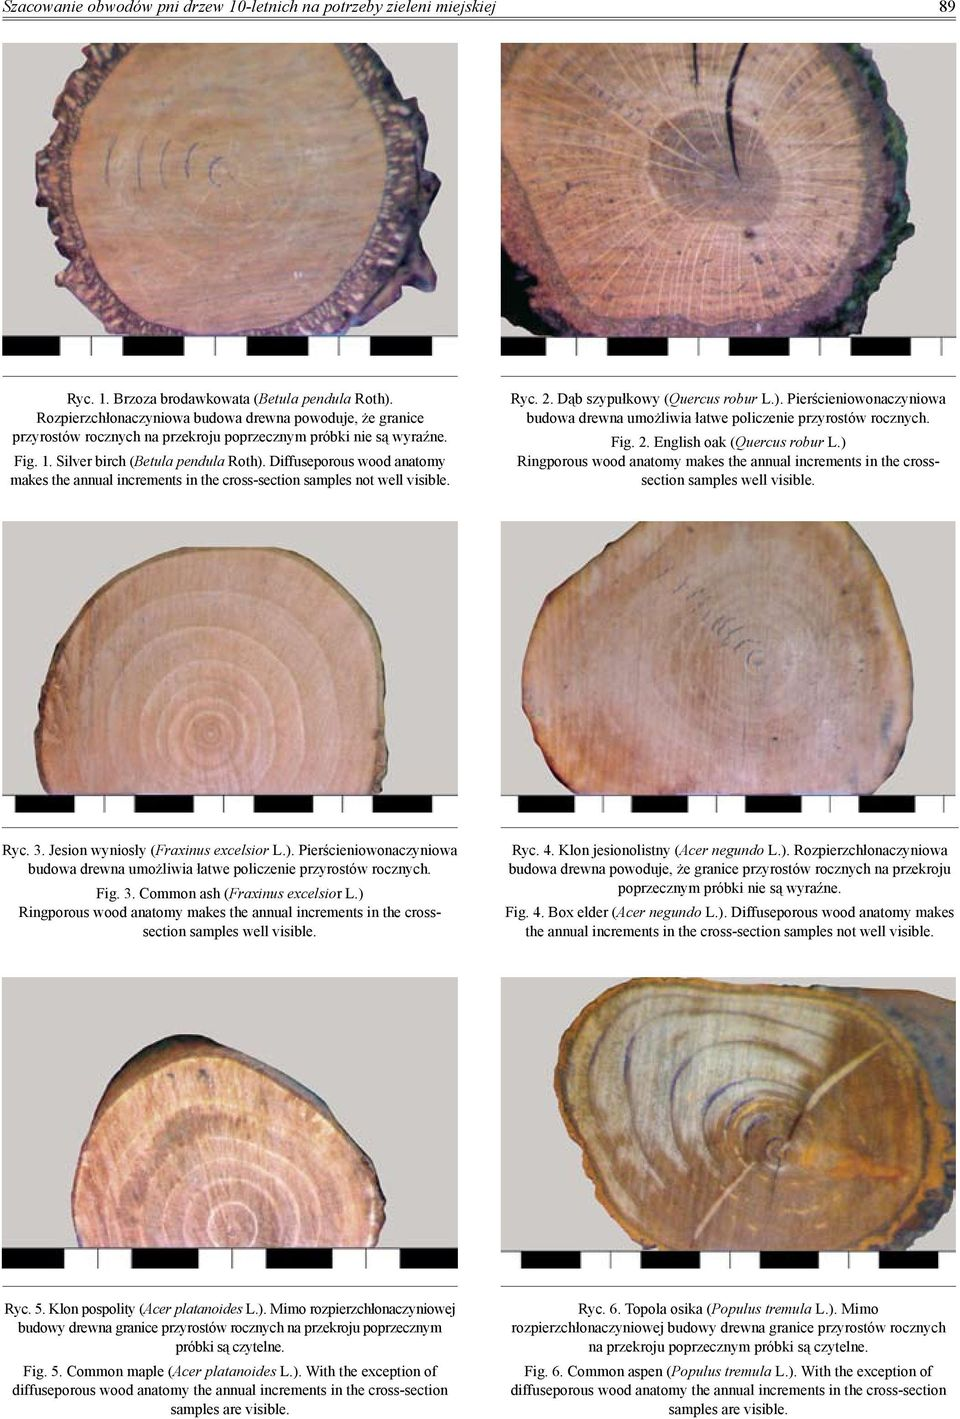 Diffuseporous wood anatomy makes the annual increments in the cross-section samples not well visible. Ryc. 2. Dąb szypułkowy (Quercus robur L.).